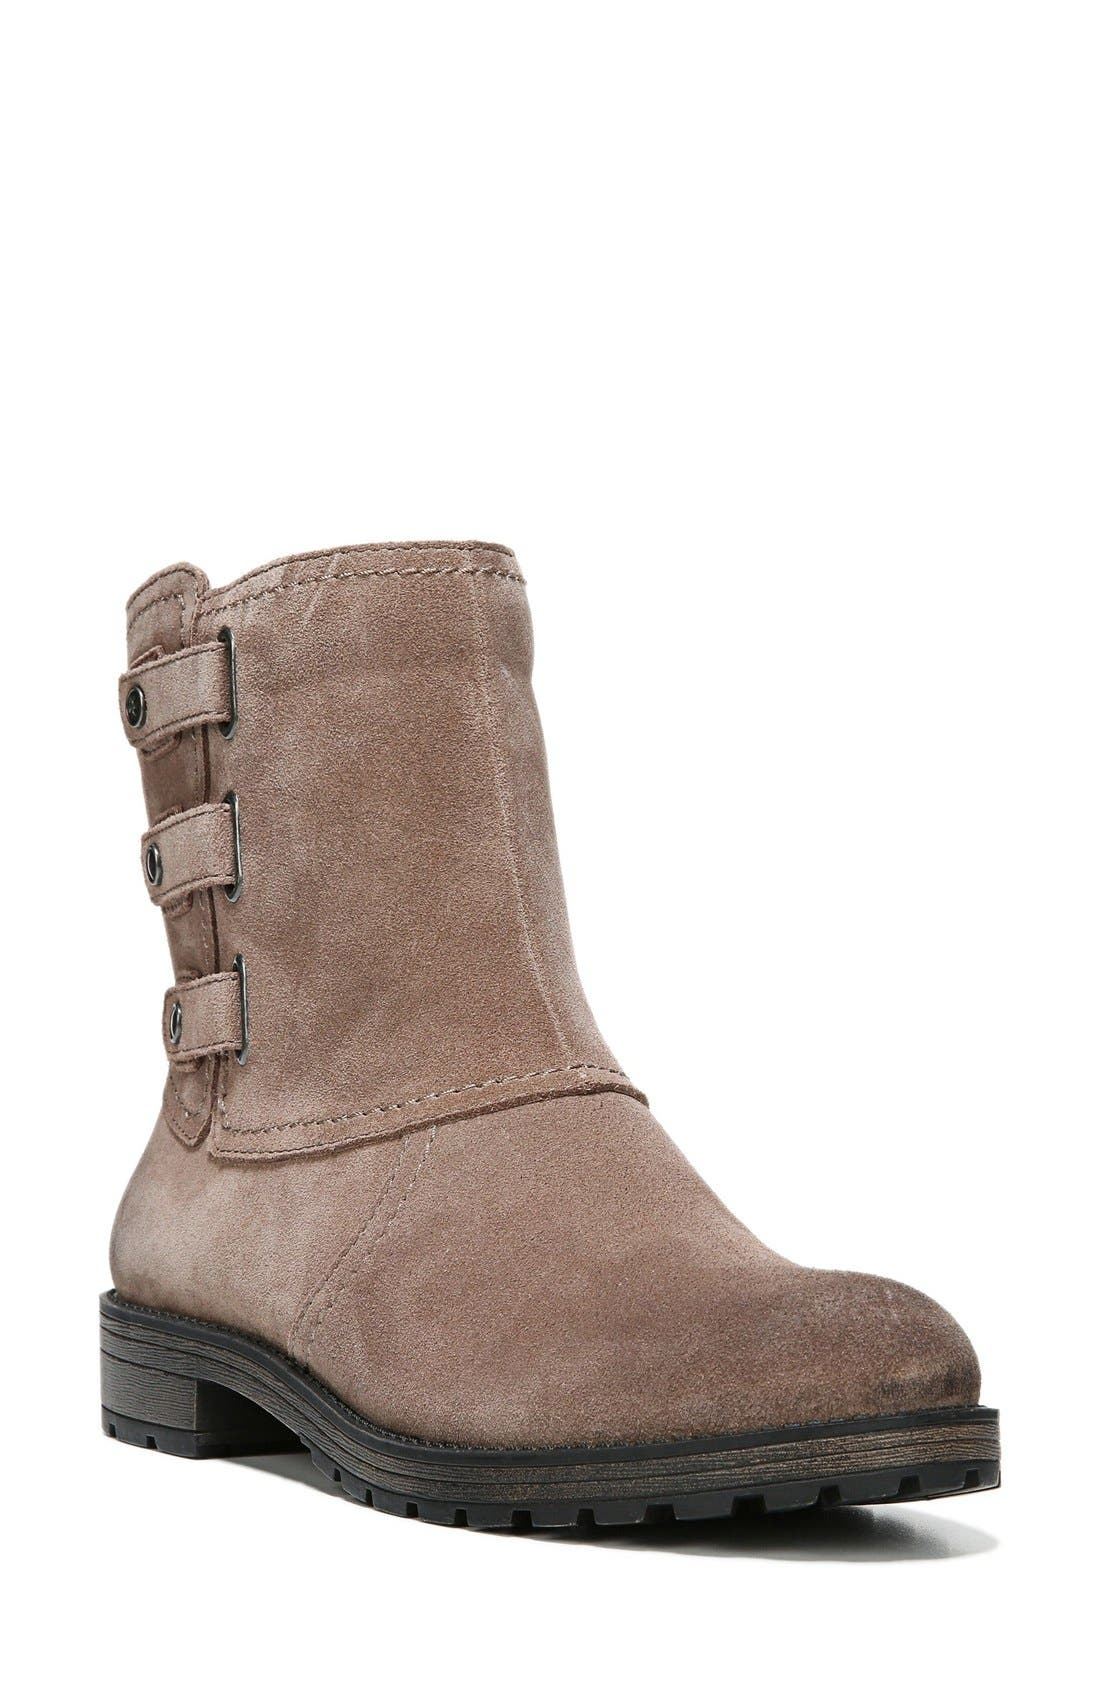 'Tynner' Boot,                             Main thumbnail 1, color,                             Taupe Leather